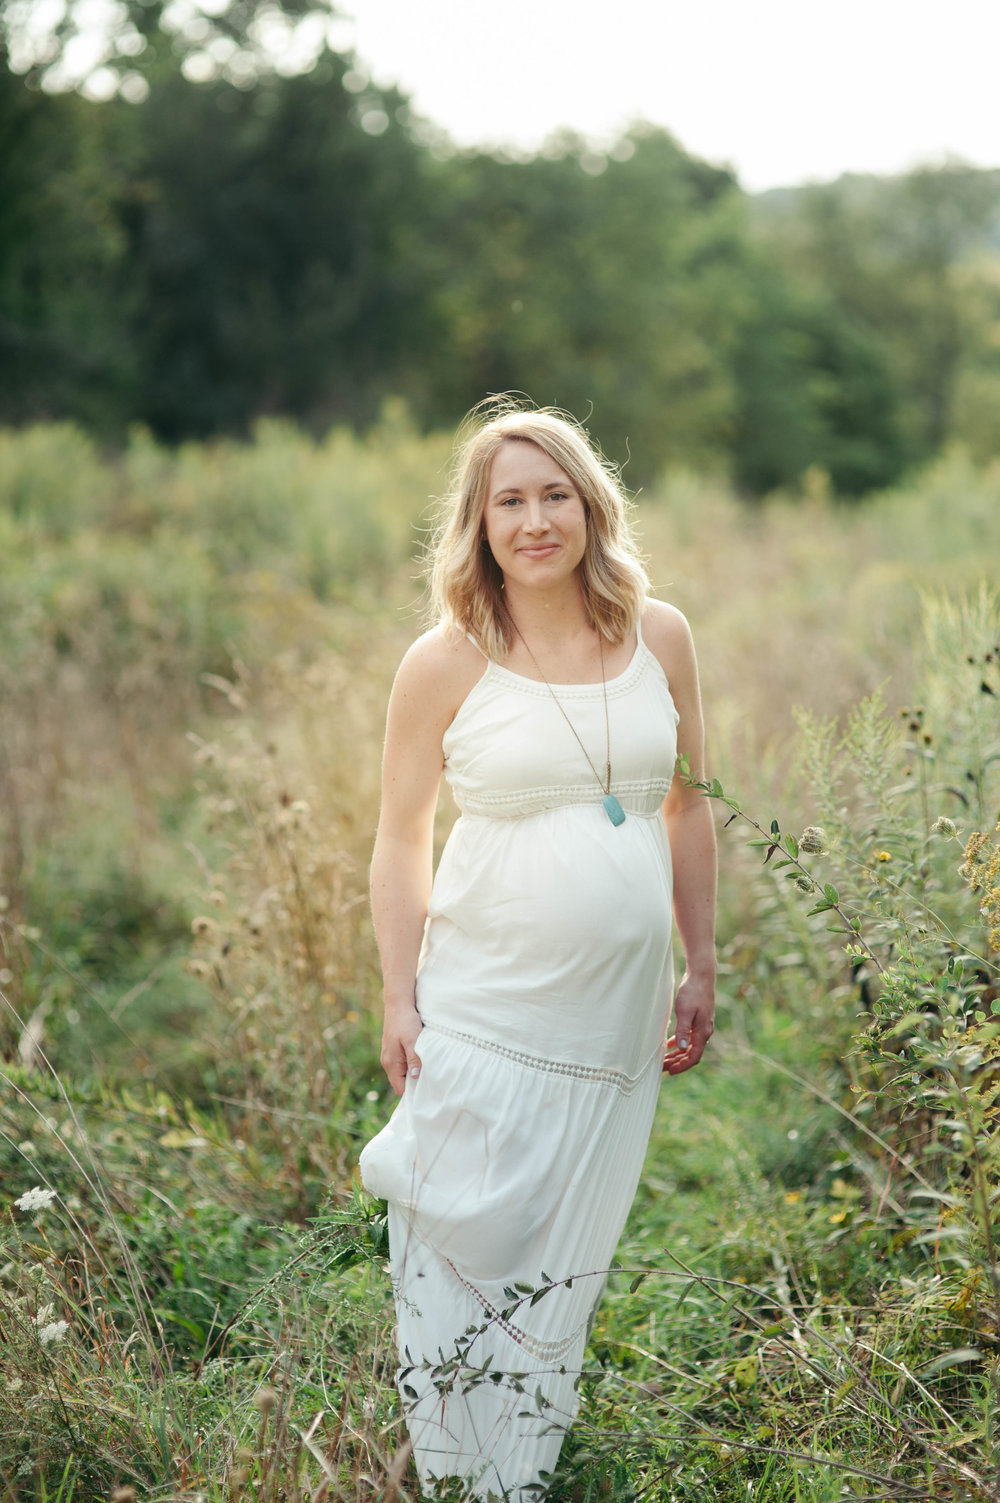 natural earthy maternity photos-27.jpg